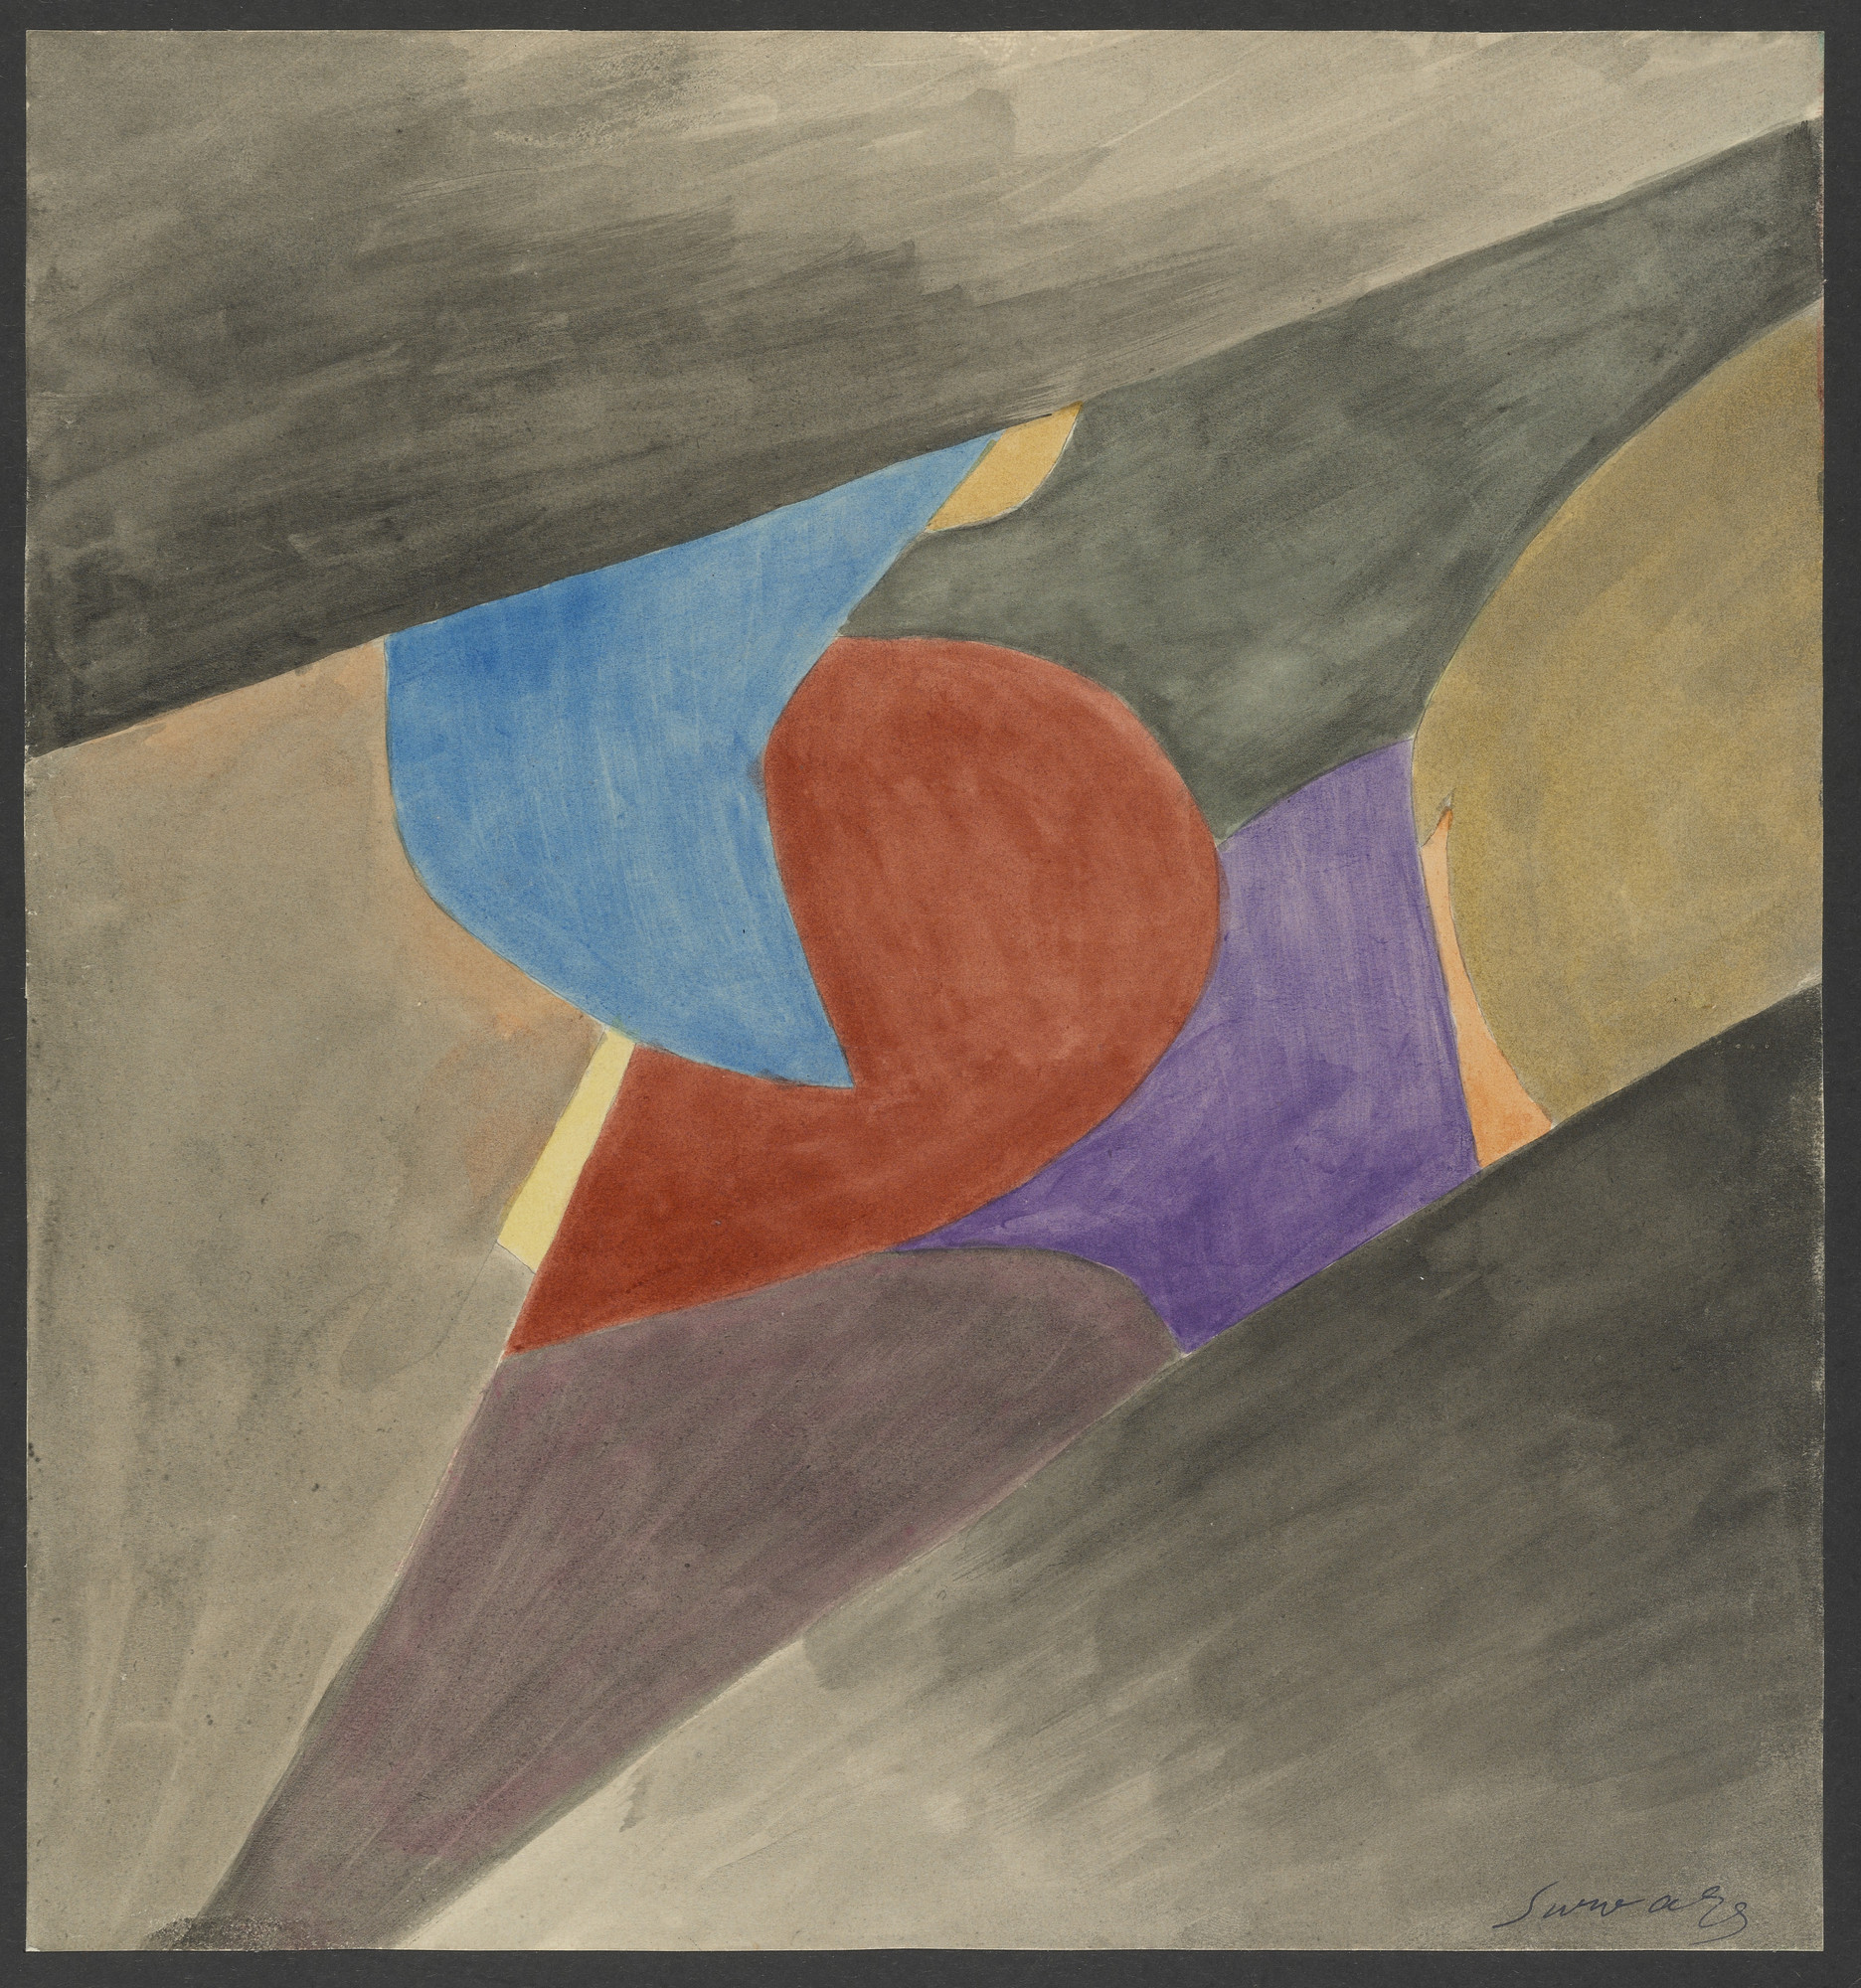 Léopold Survage. Colored Rhythm: Study for the Film. (1913)